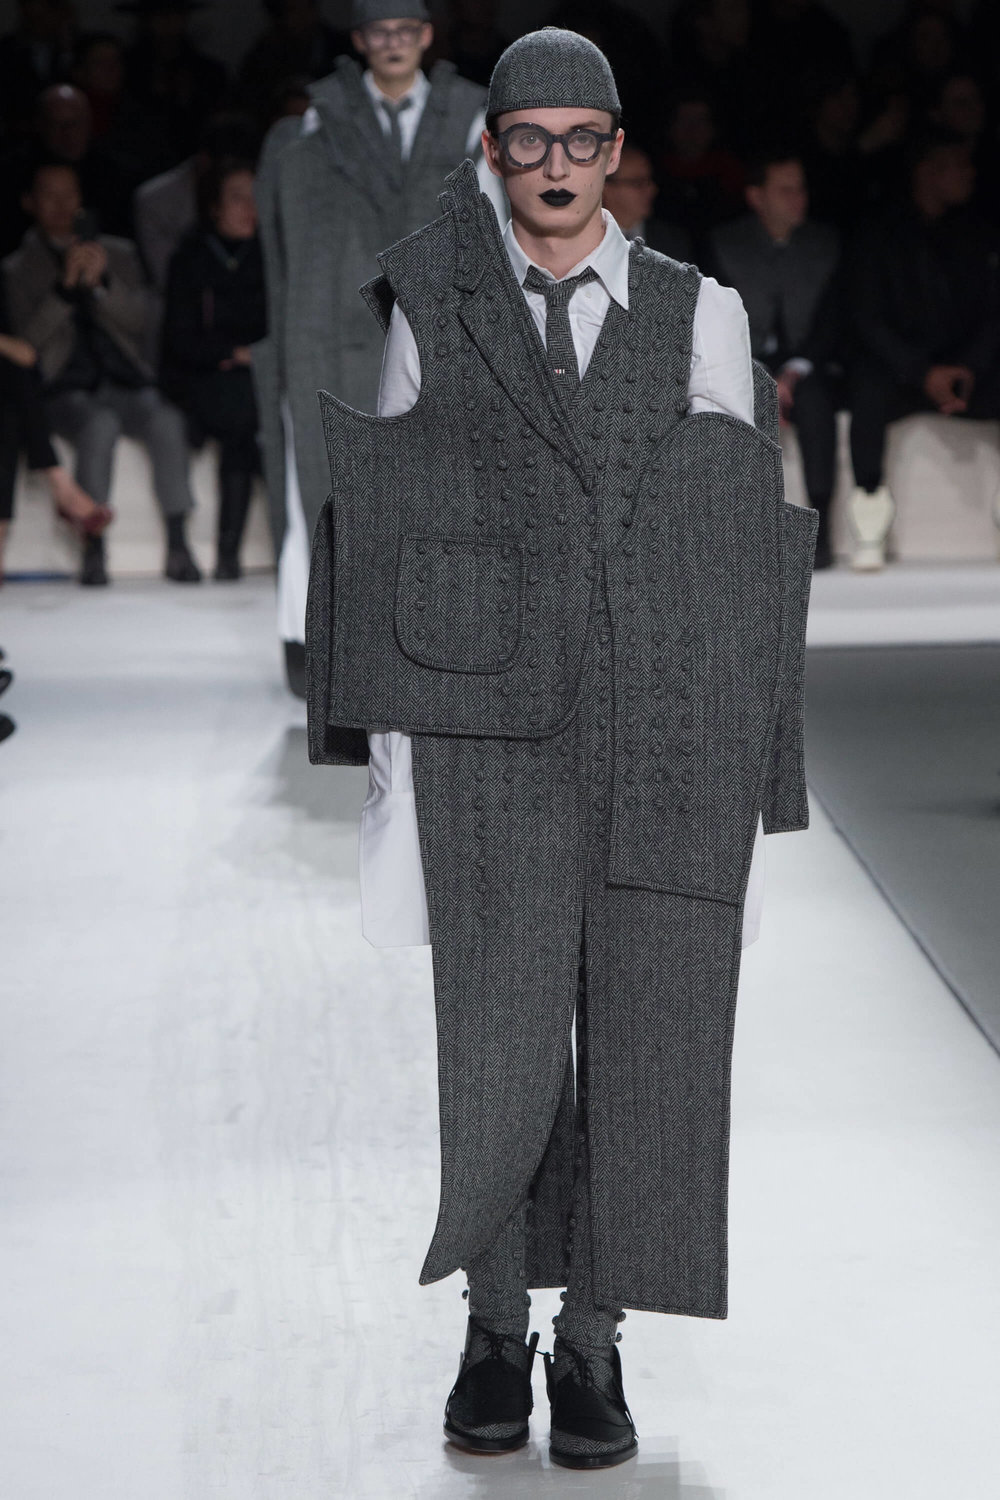 Thom-Browne-Never-Fails-to-Amaze-Thatsitmag-Thatsitmagazine-GraceBrookes-Paris-Fashion-week4.jpg